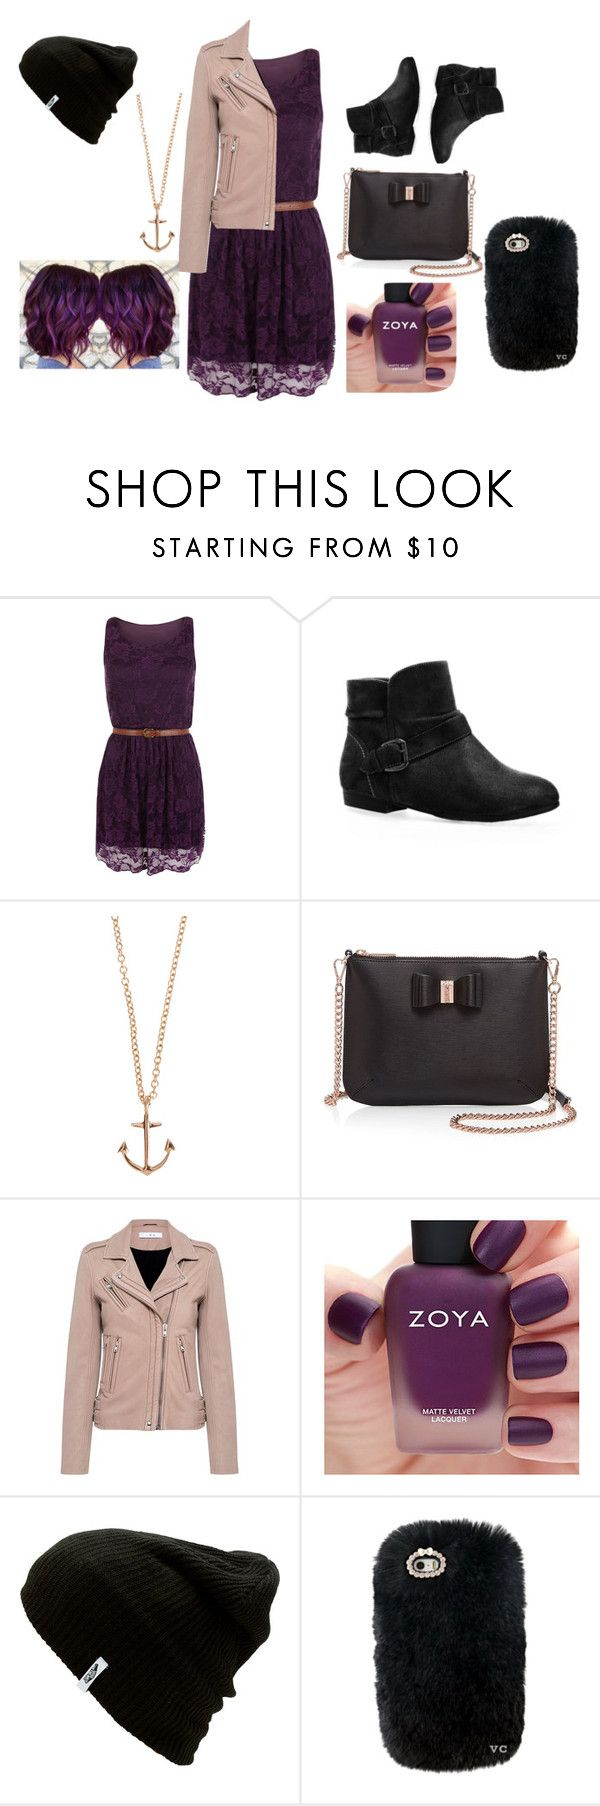 """""""Casual Outing Outfit"""" by loveleyktatoute on Polyvore featuring WearAll, Avenue, Minor Obsessions, Ted Baker, IRO, Zoya and Vans"""